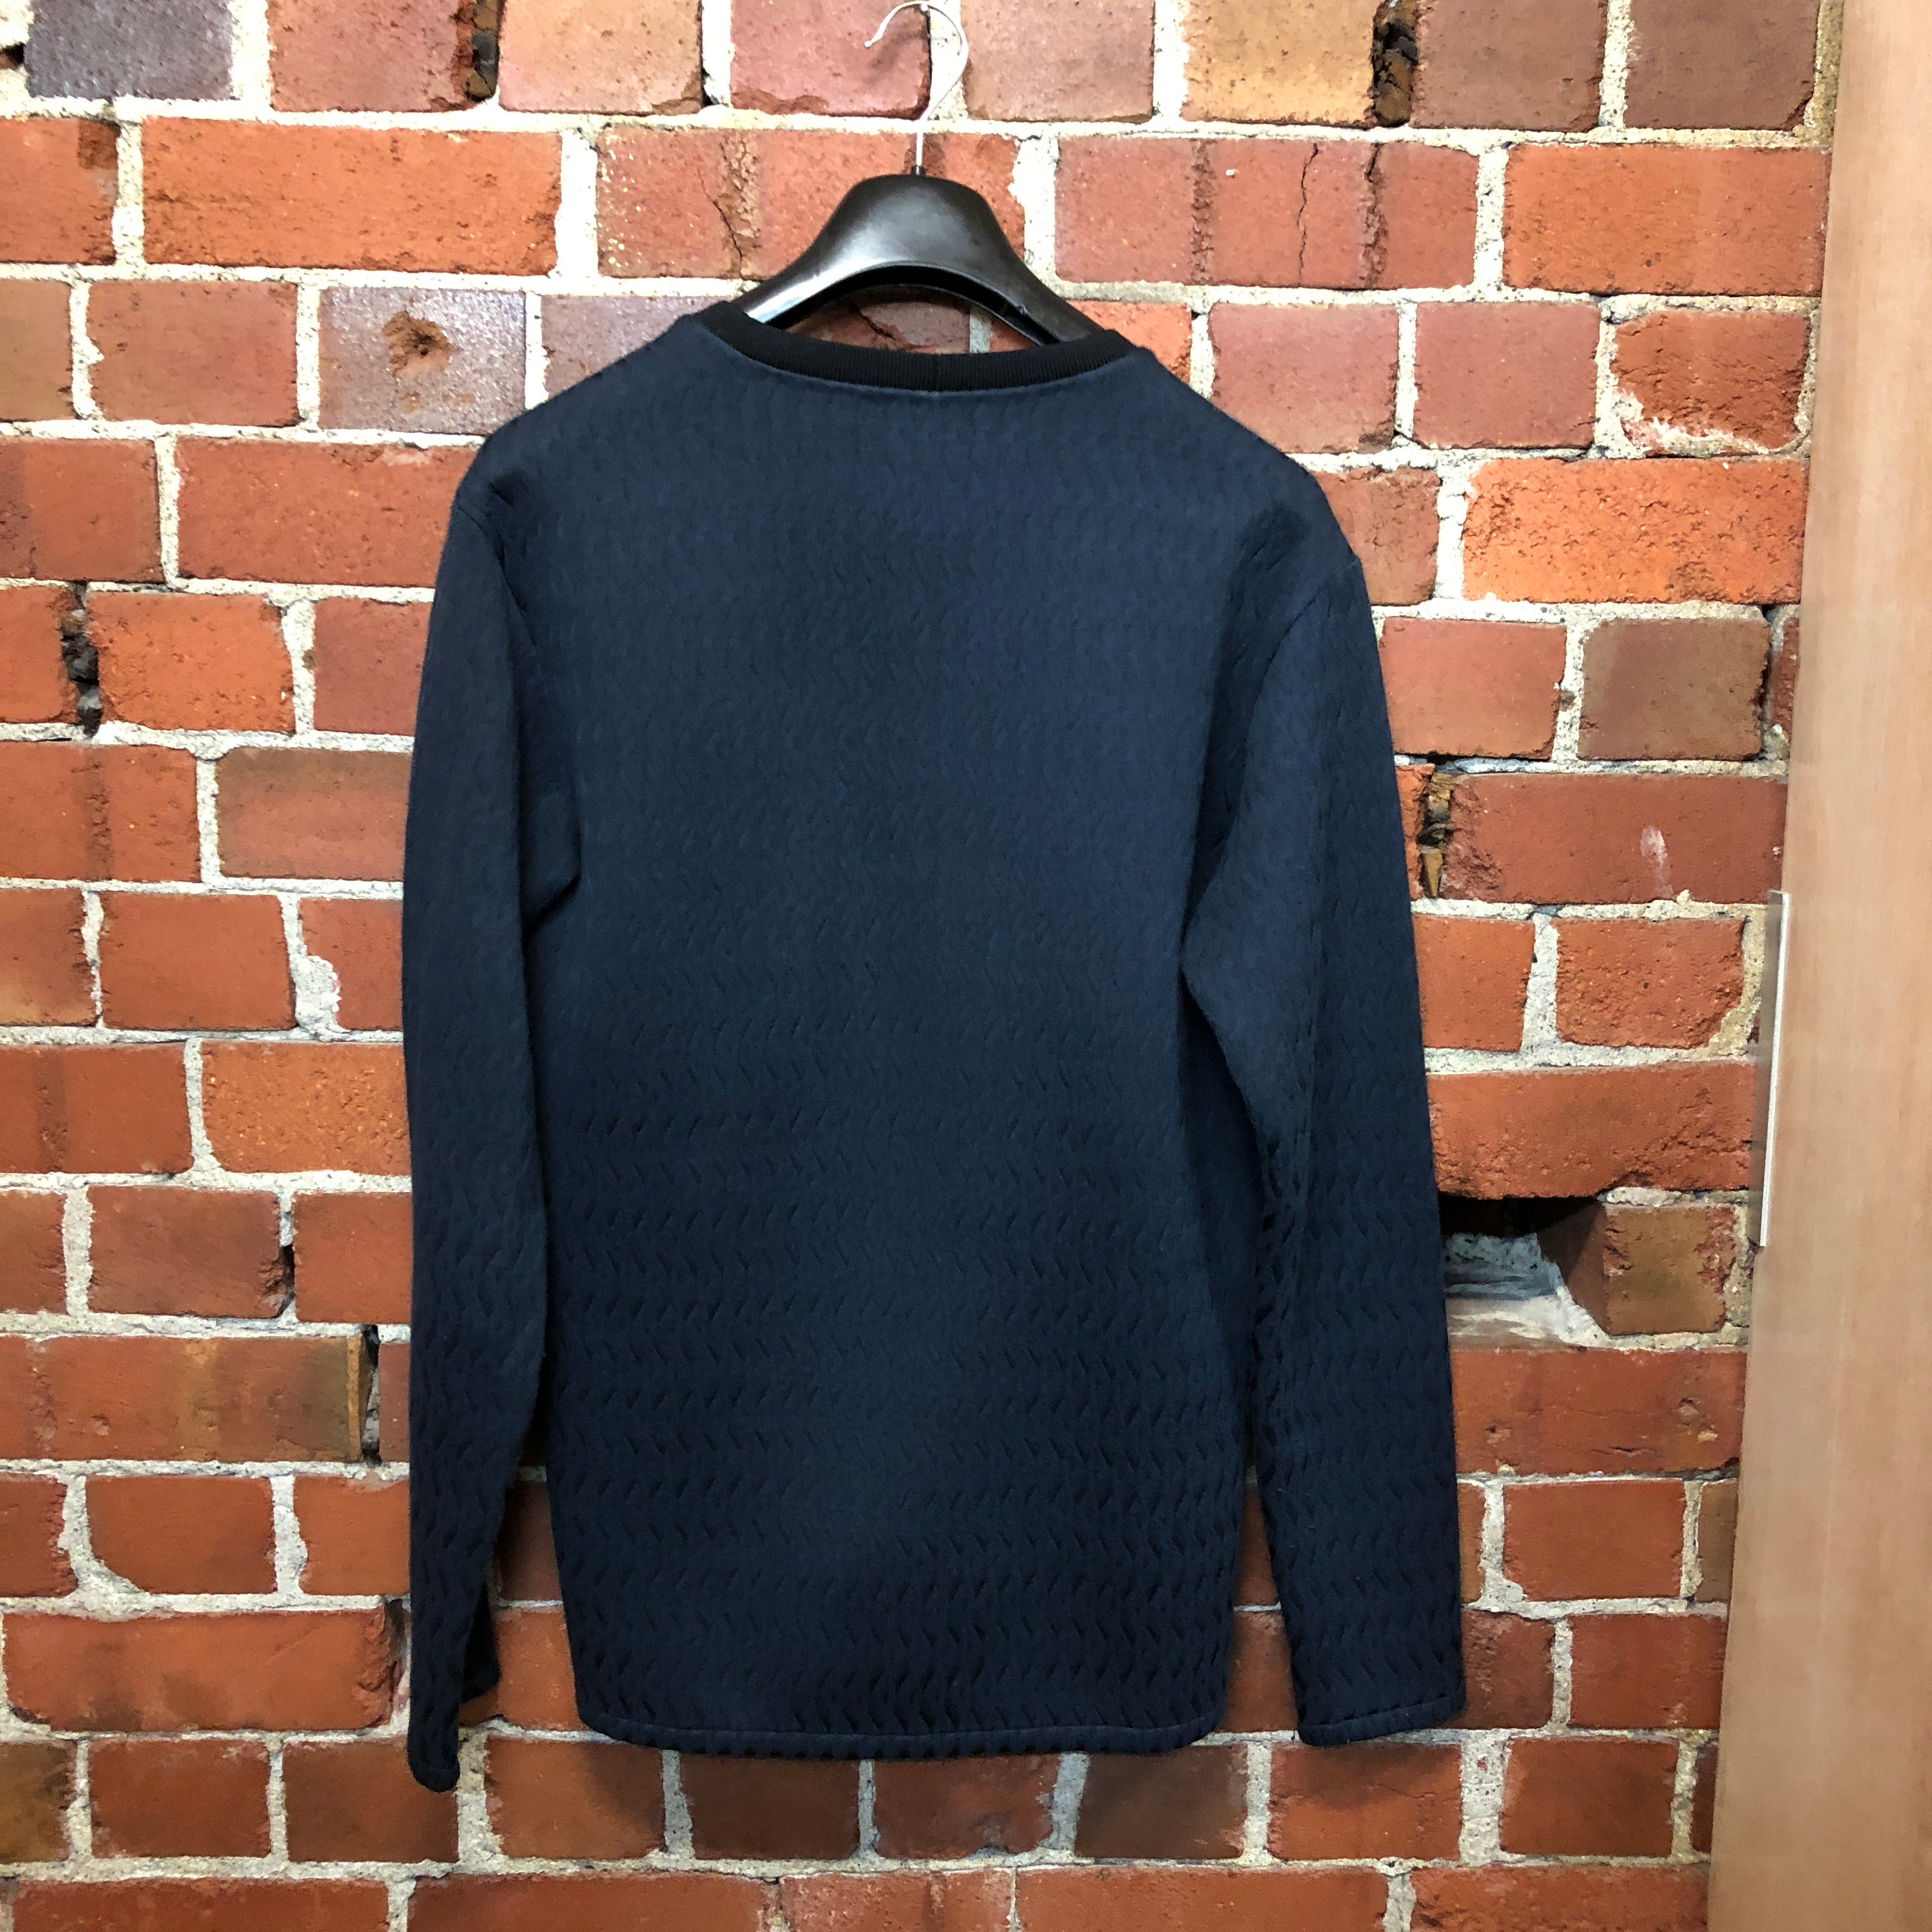 PHILLIP LIM textured fabric jumper